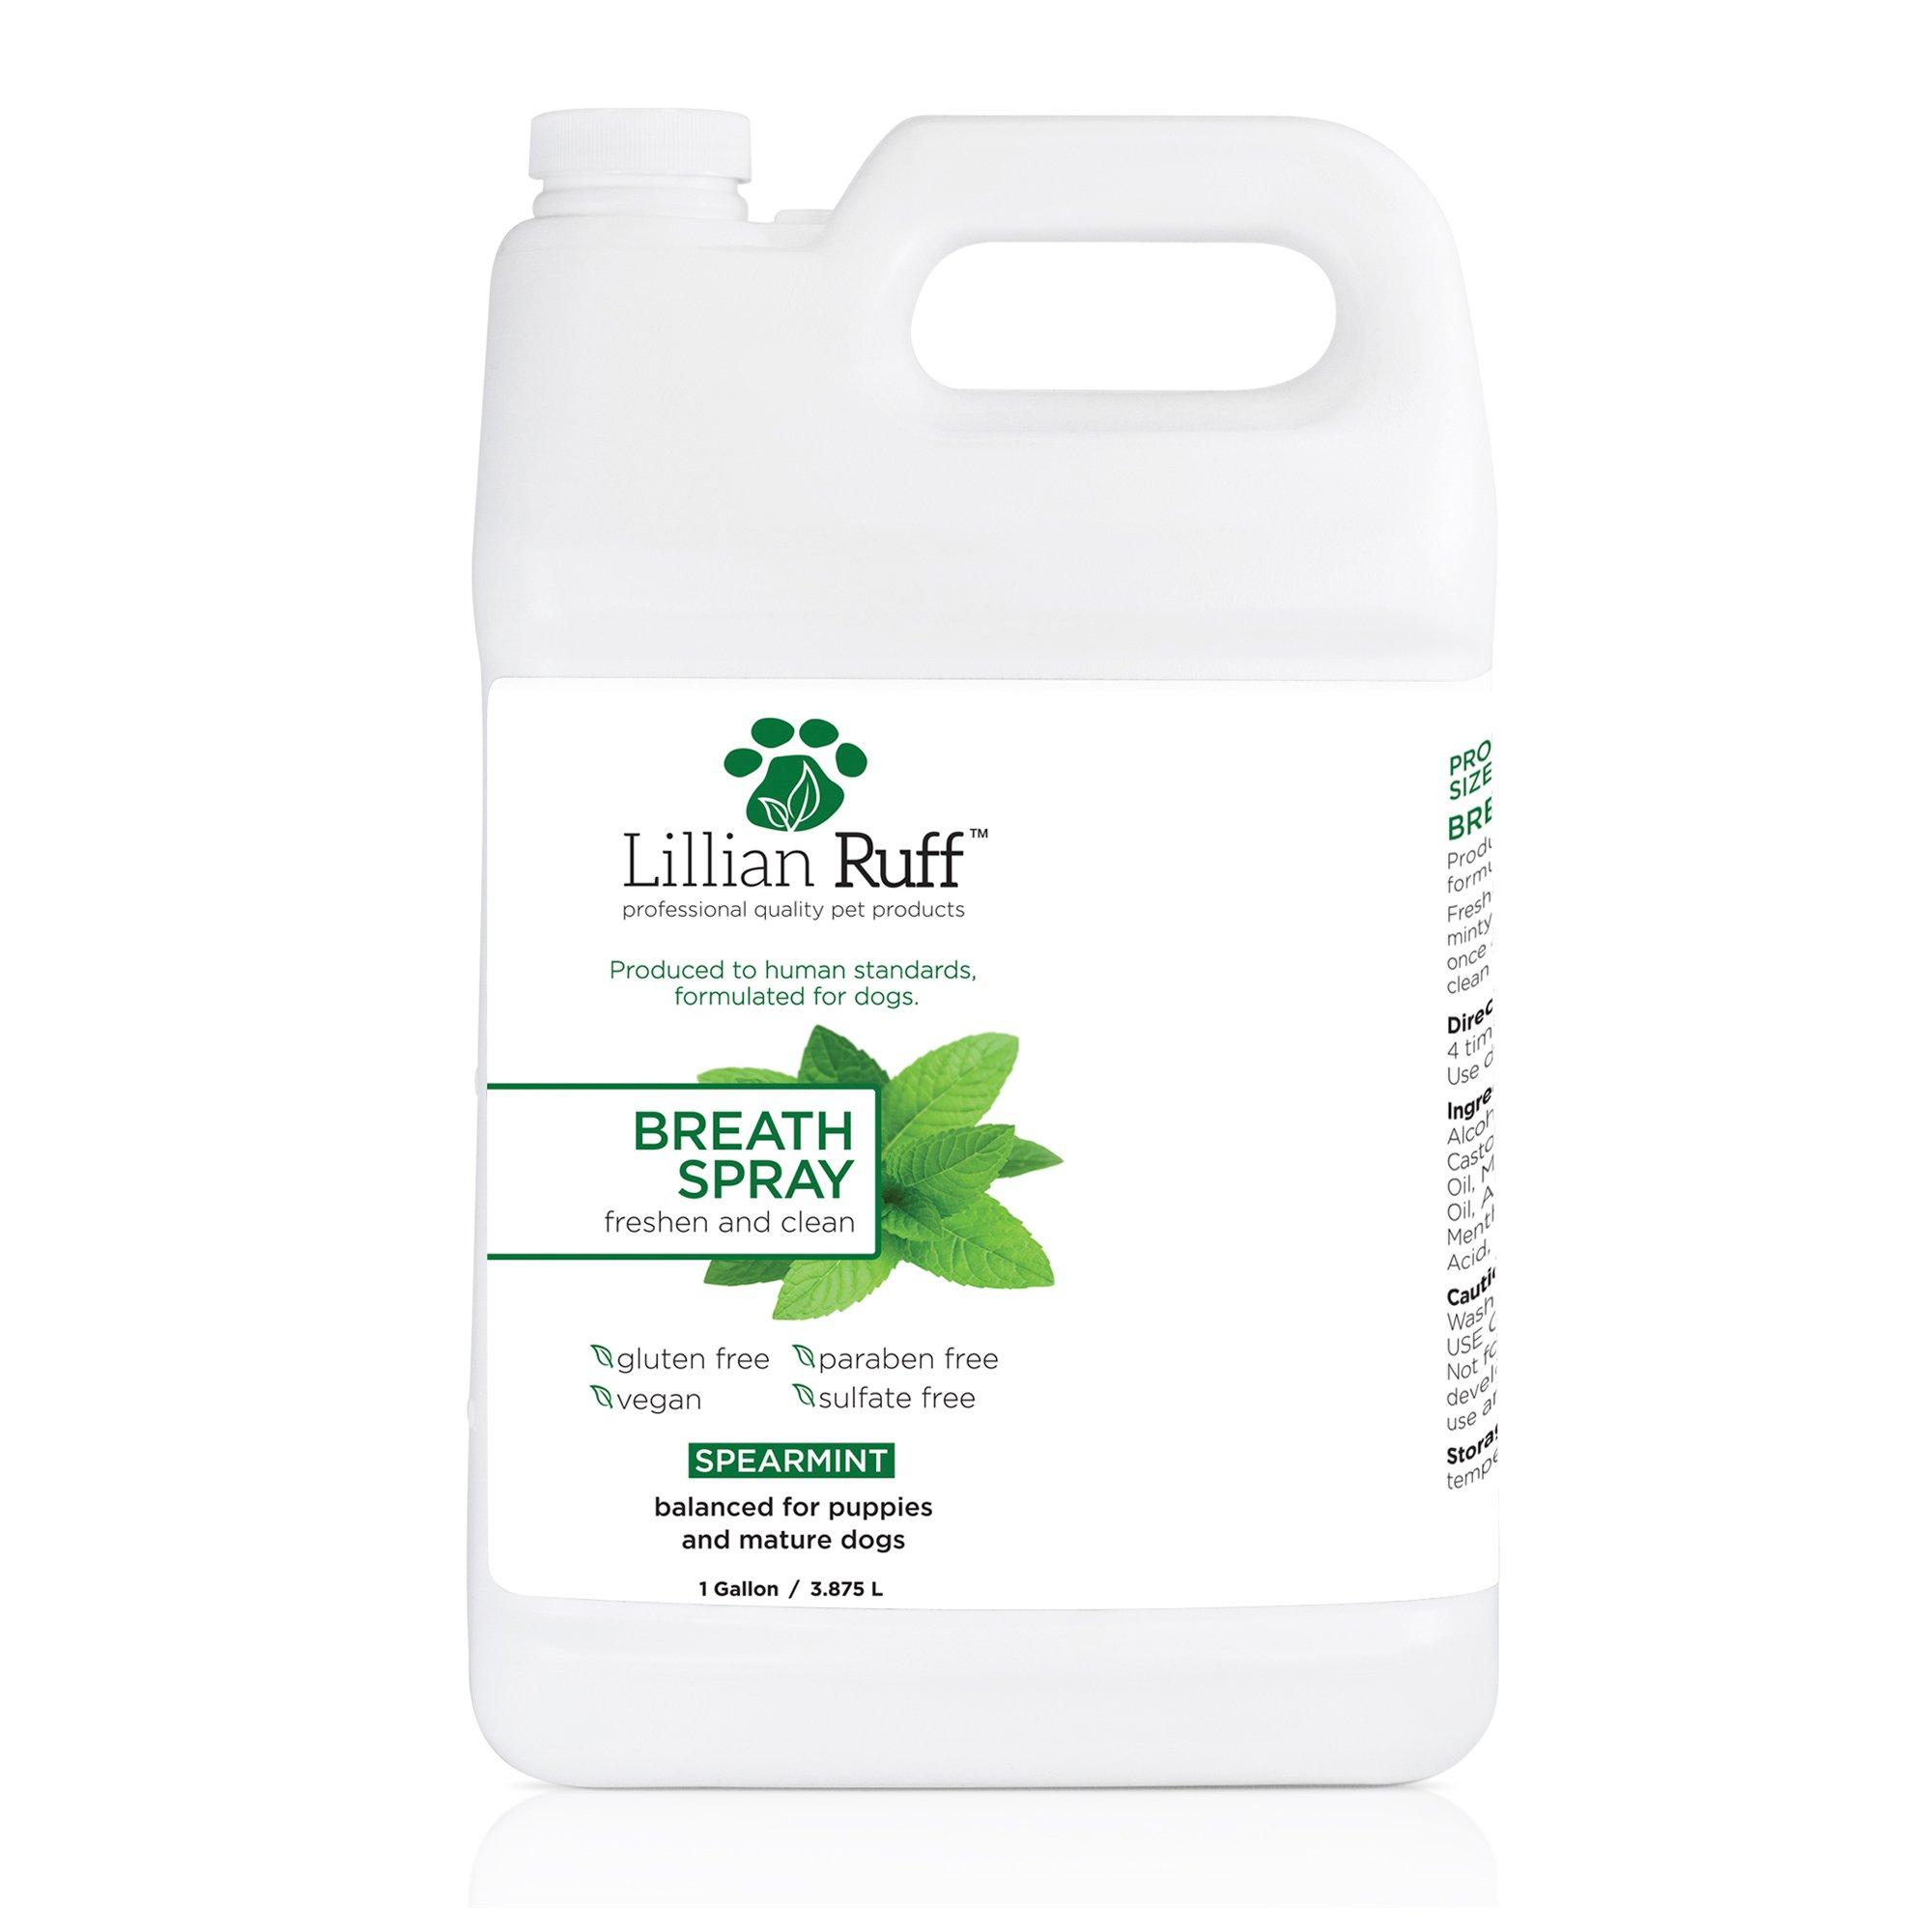 Lillian Ruff Dog Breath Freshener Spray - Spearmint Flavor - Safe for Cats - Fight Bad Breath, Dental Plaque and Tartar - Boost Immune System (Gallon) by Lillian Ruff